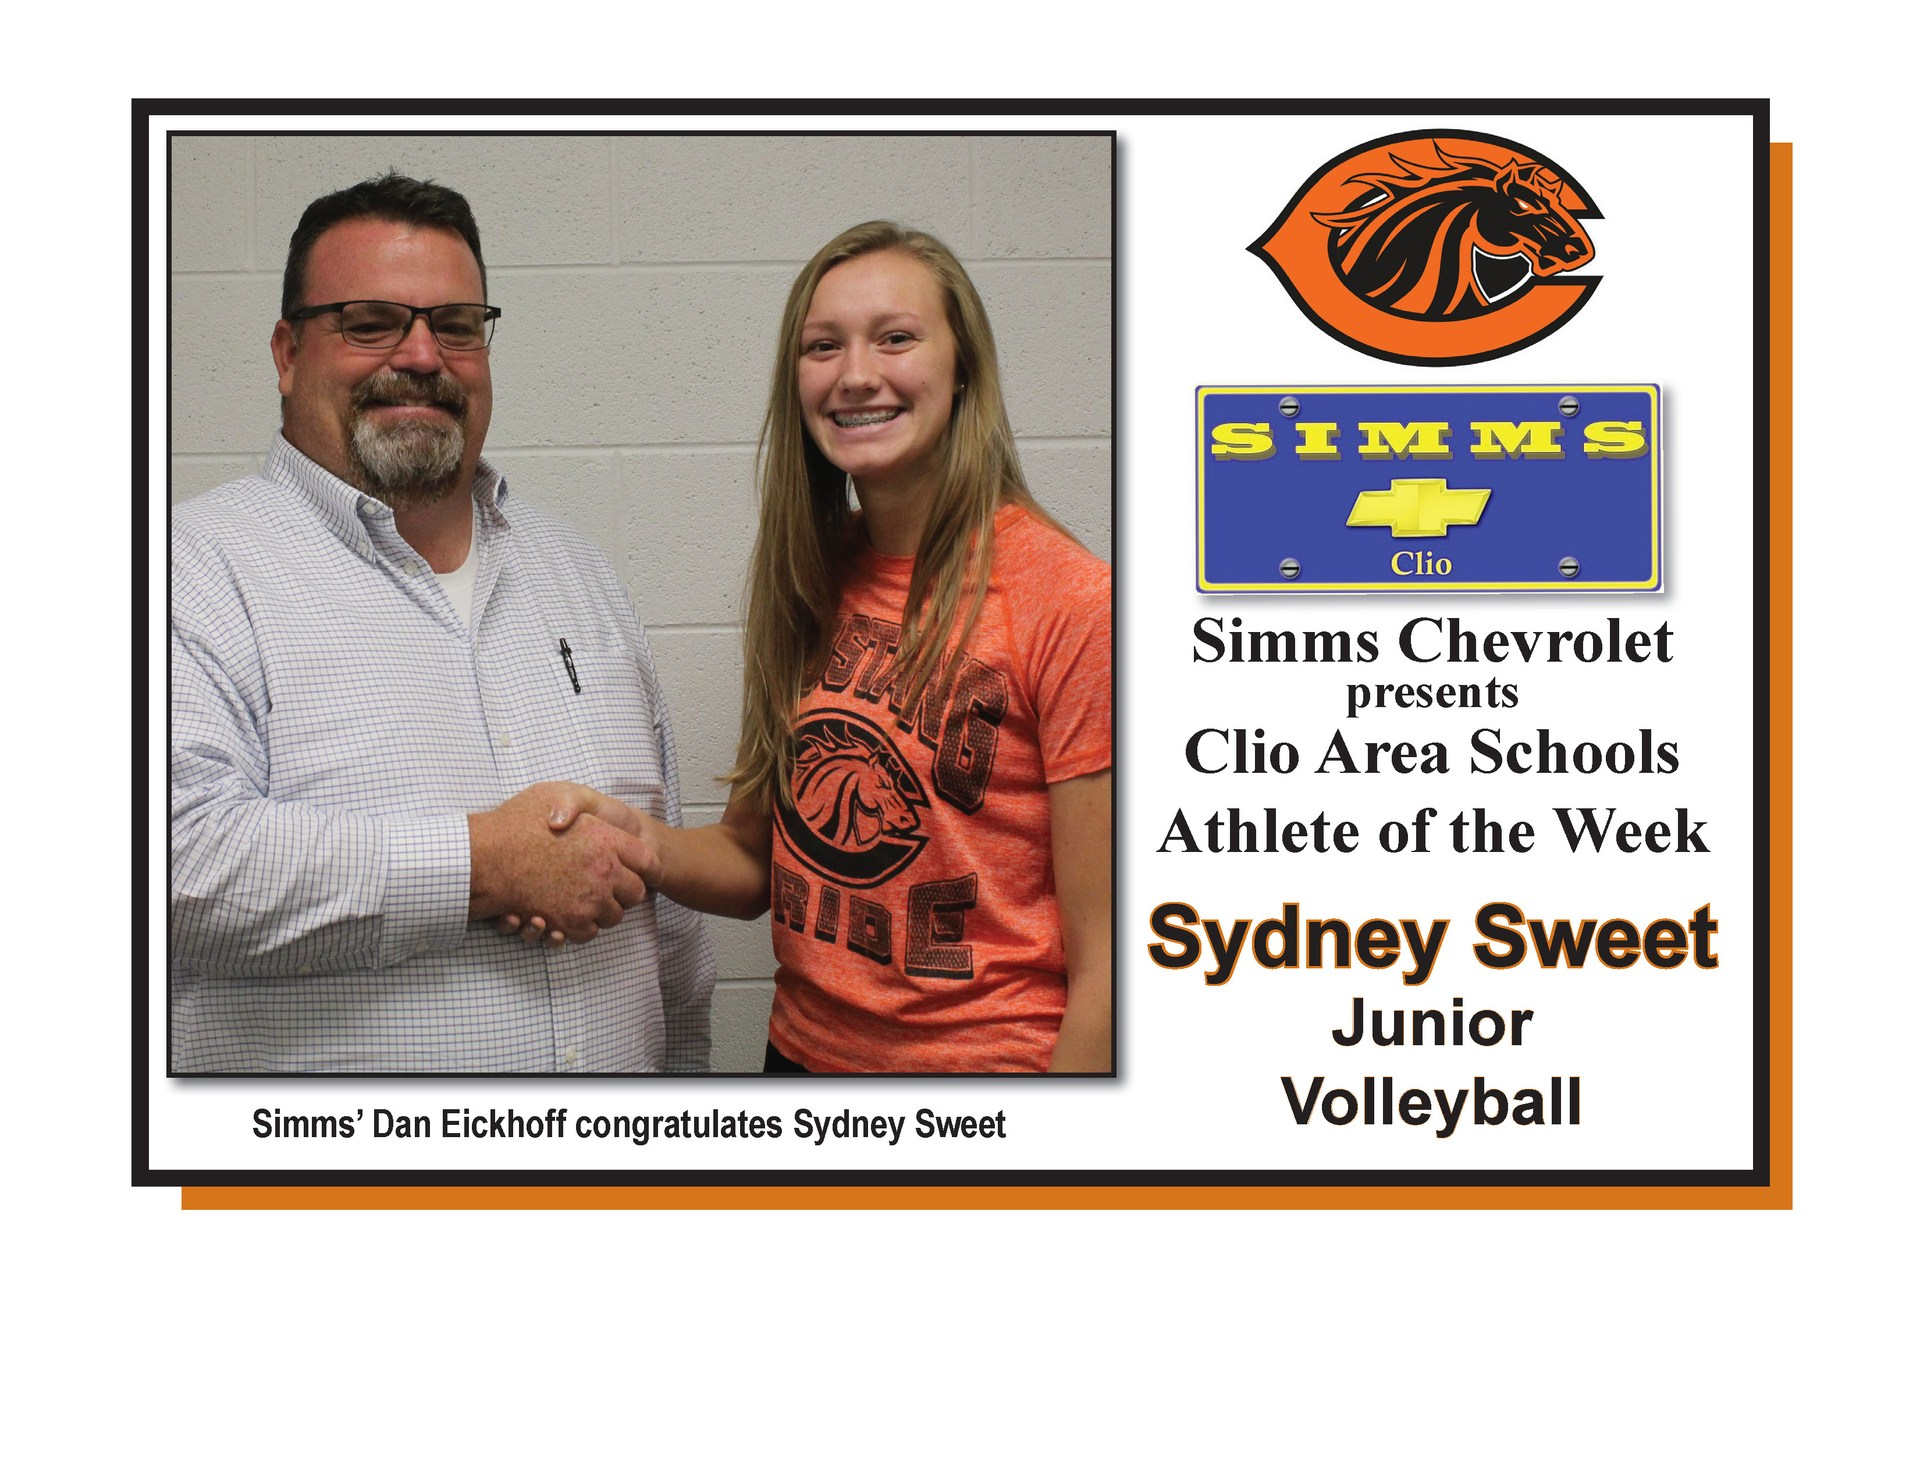 Photo of Sydney Sweet receiving Simms Chevrolet Athlete of the Week honors from Dan Eickoff